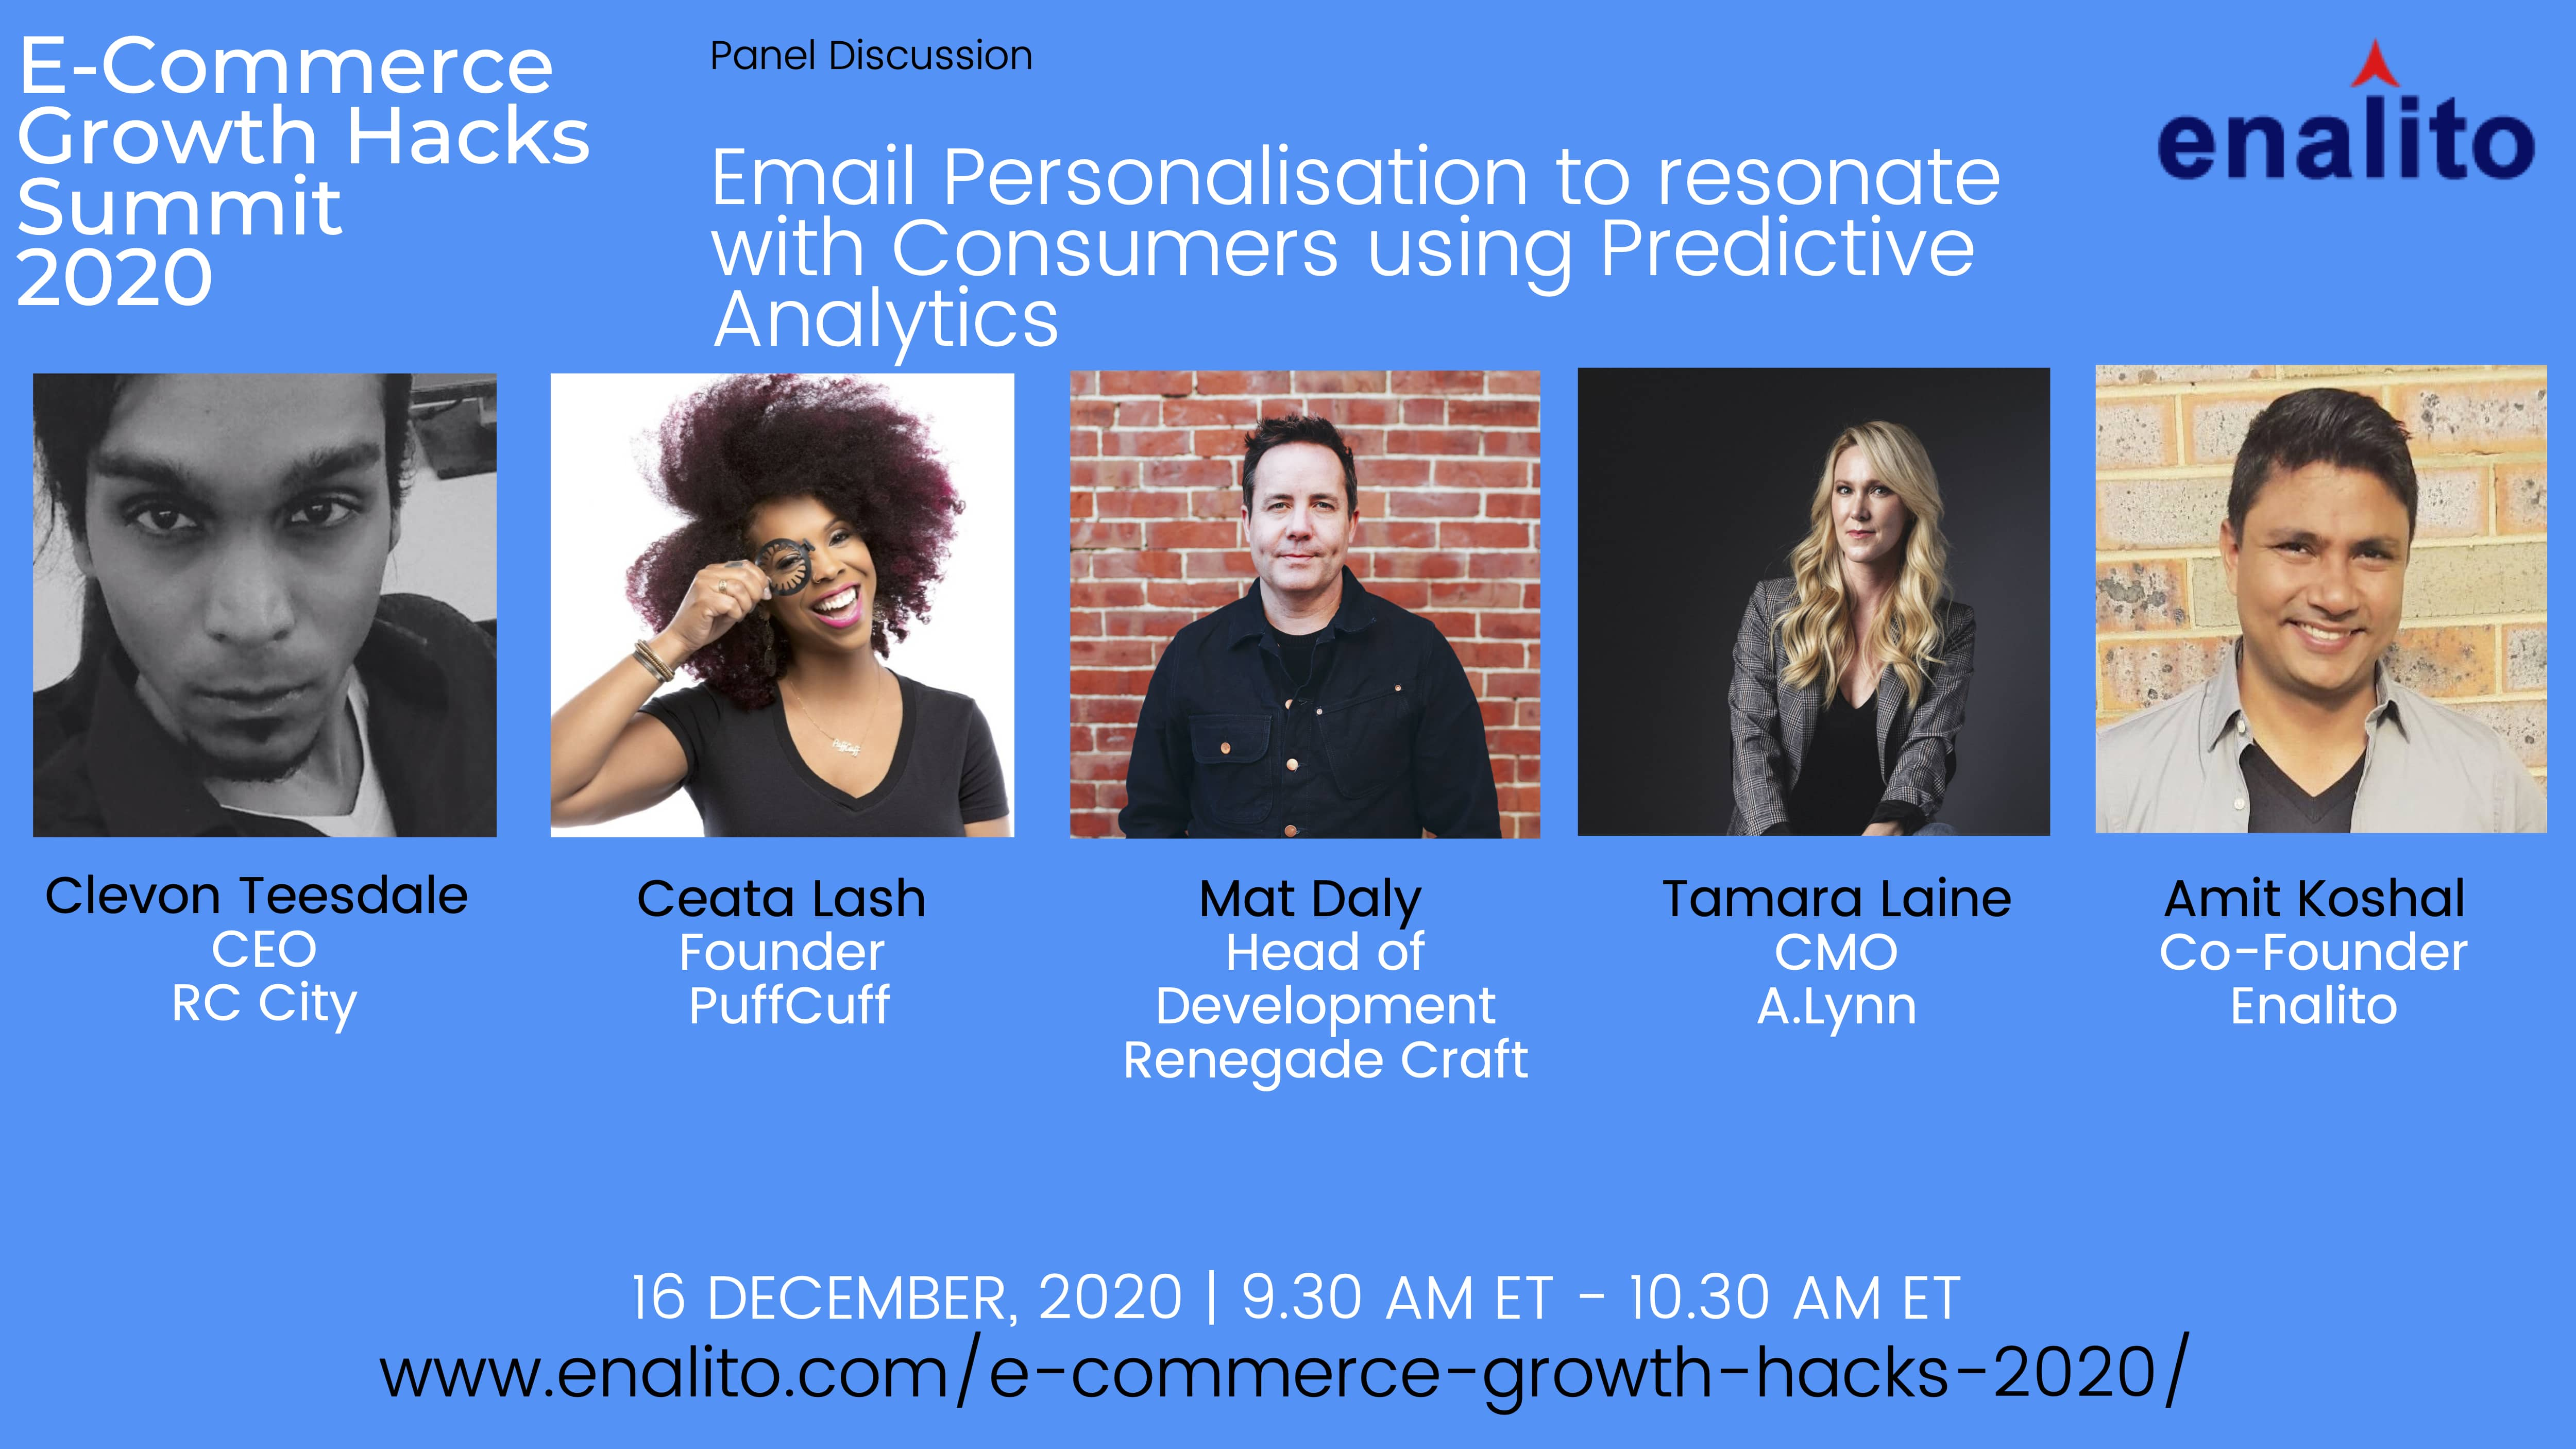 Email Personalisation to resonate with Consumers using Predictive Analytics